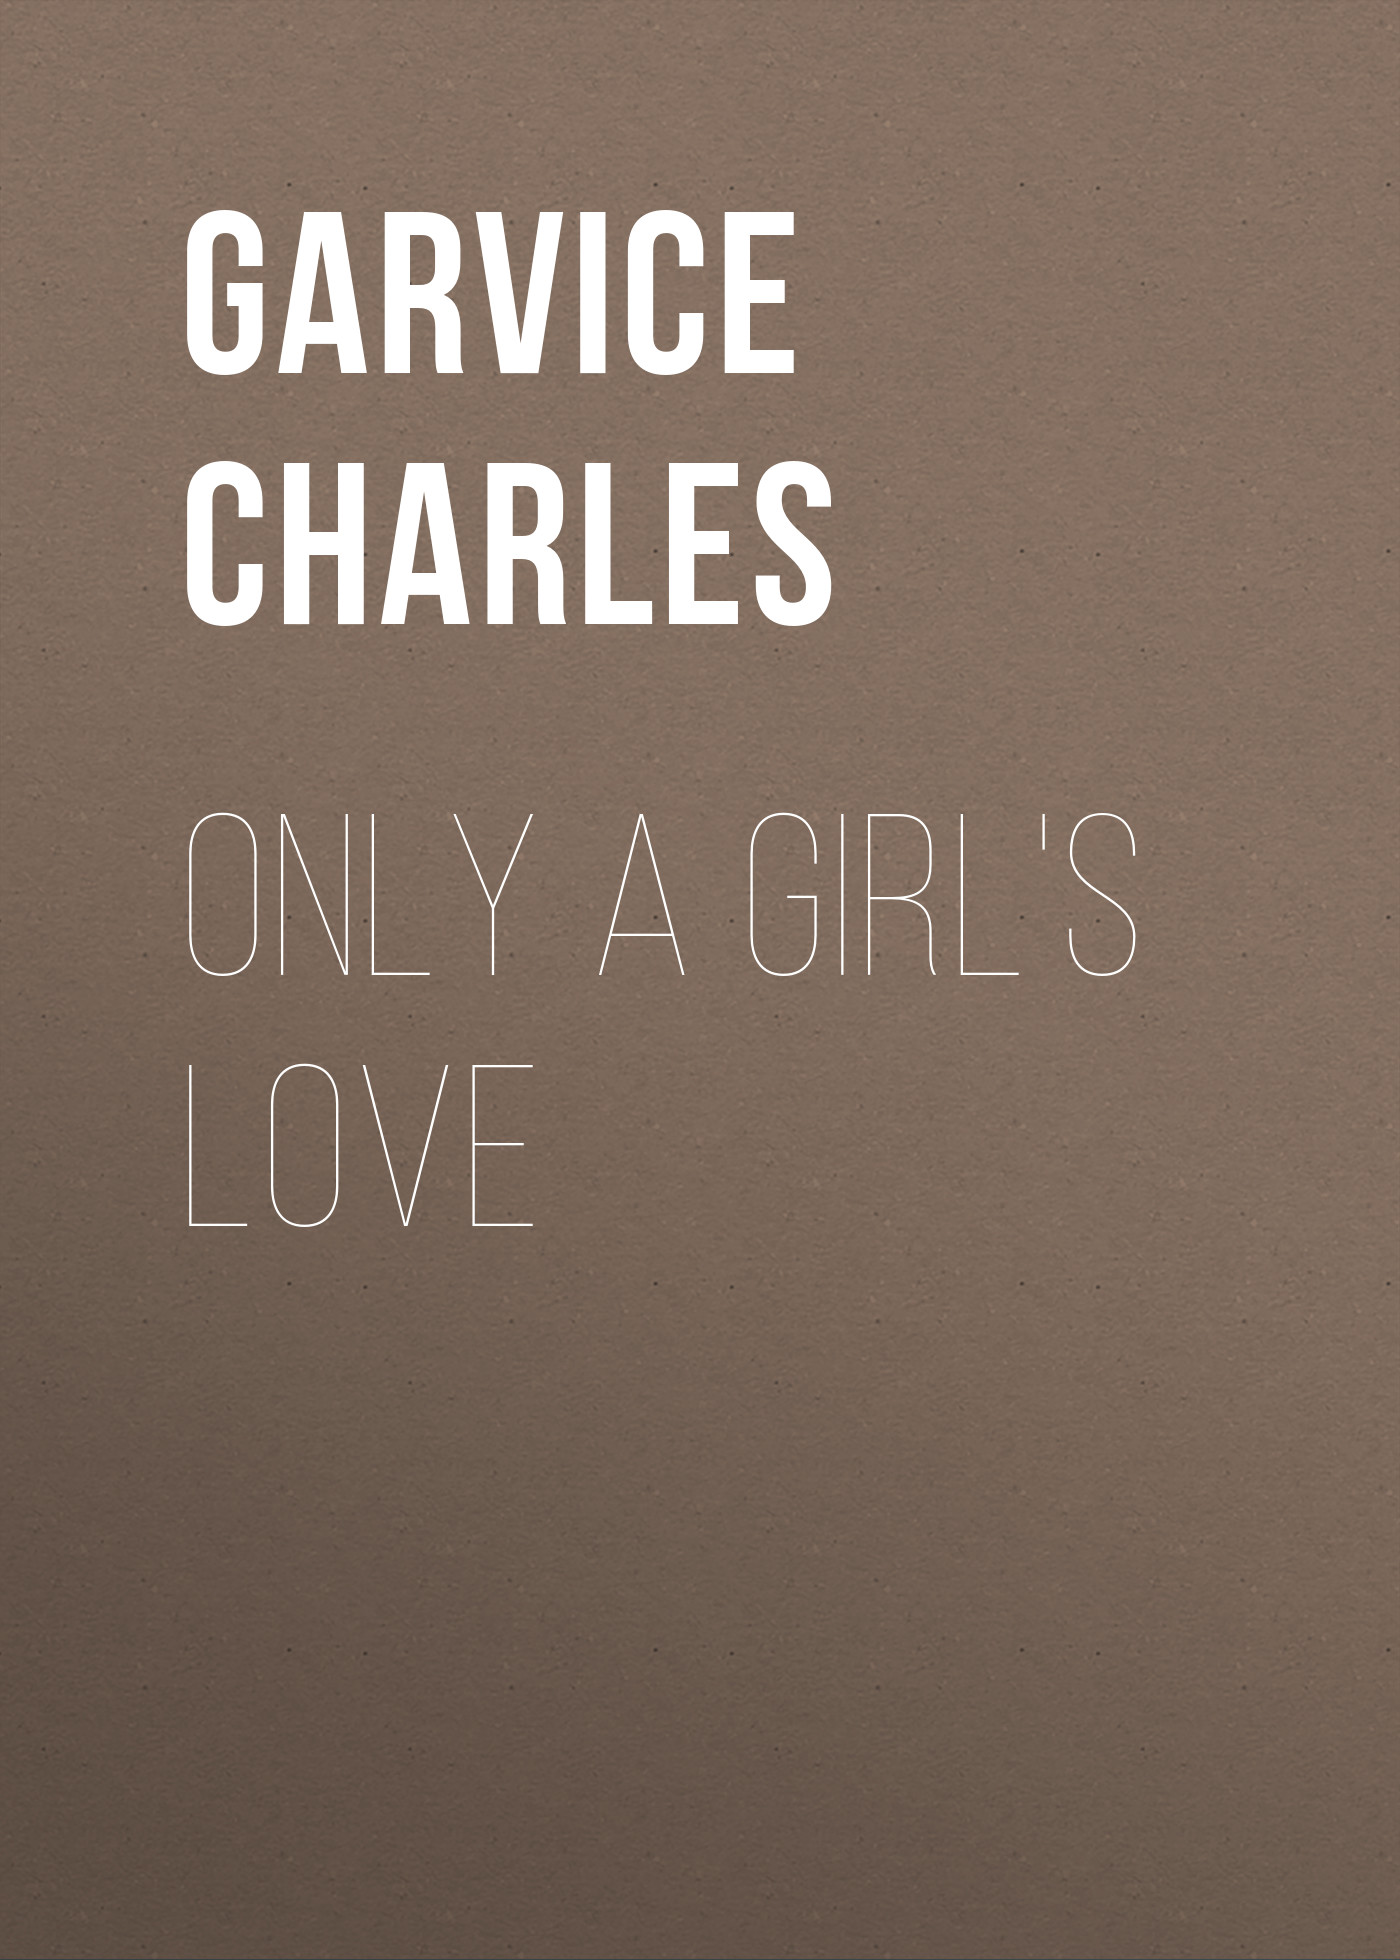 Garvice Charles Only a Girl's Love